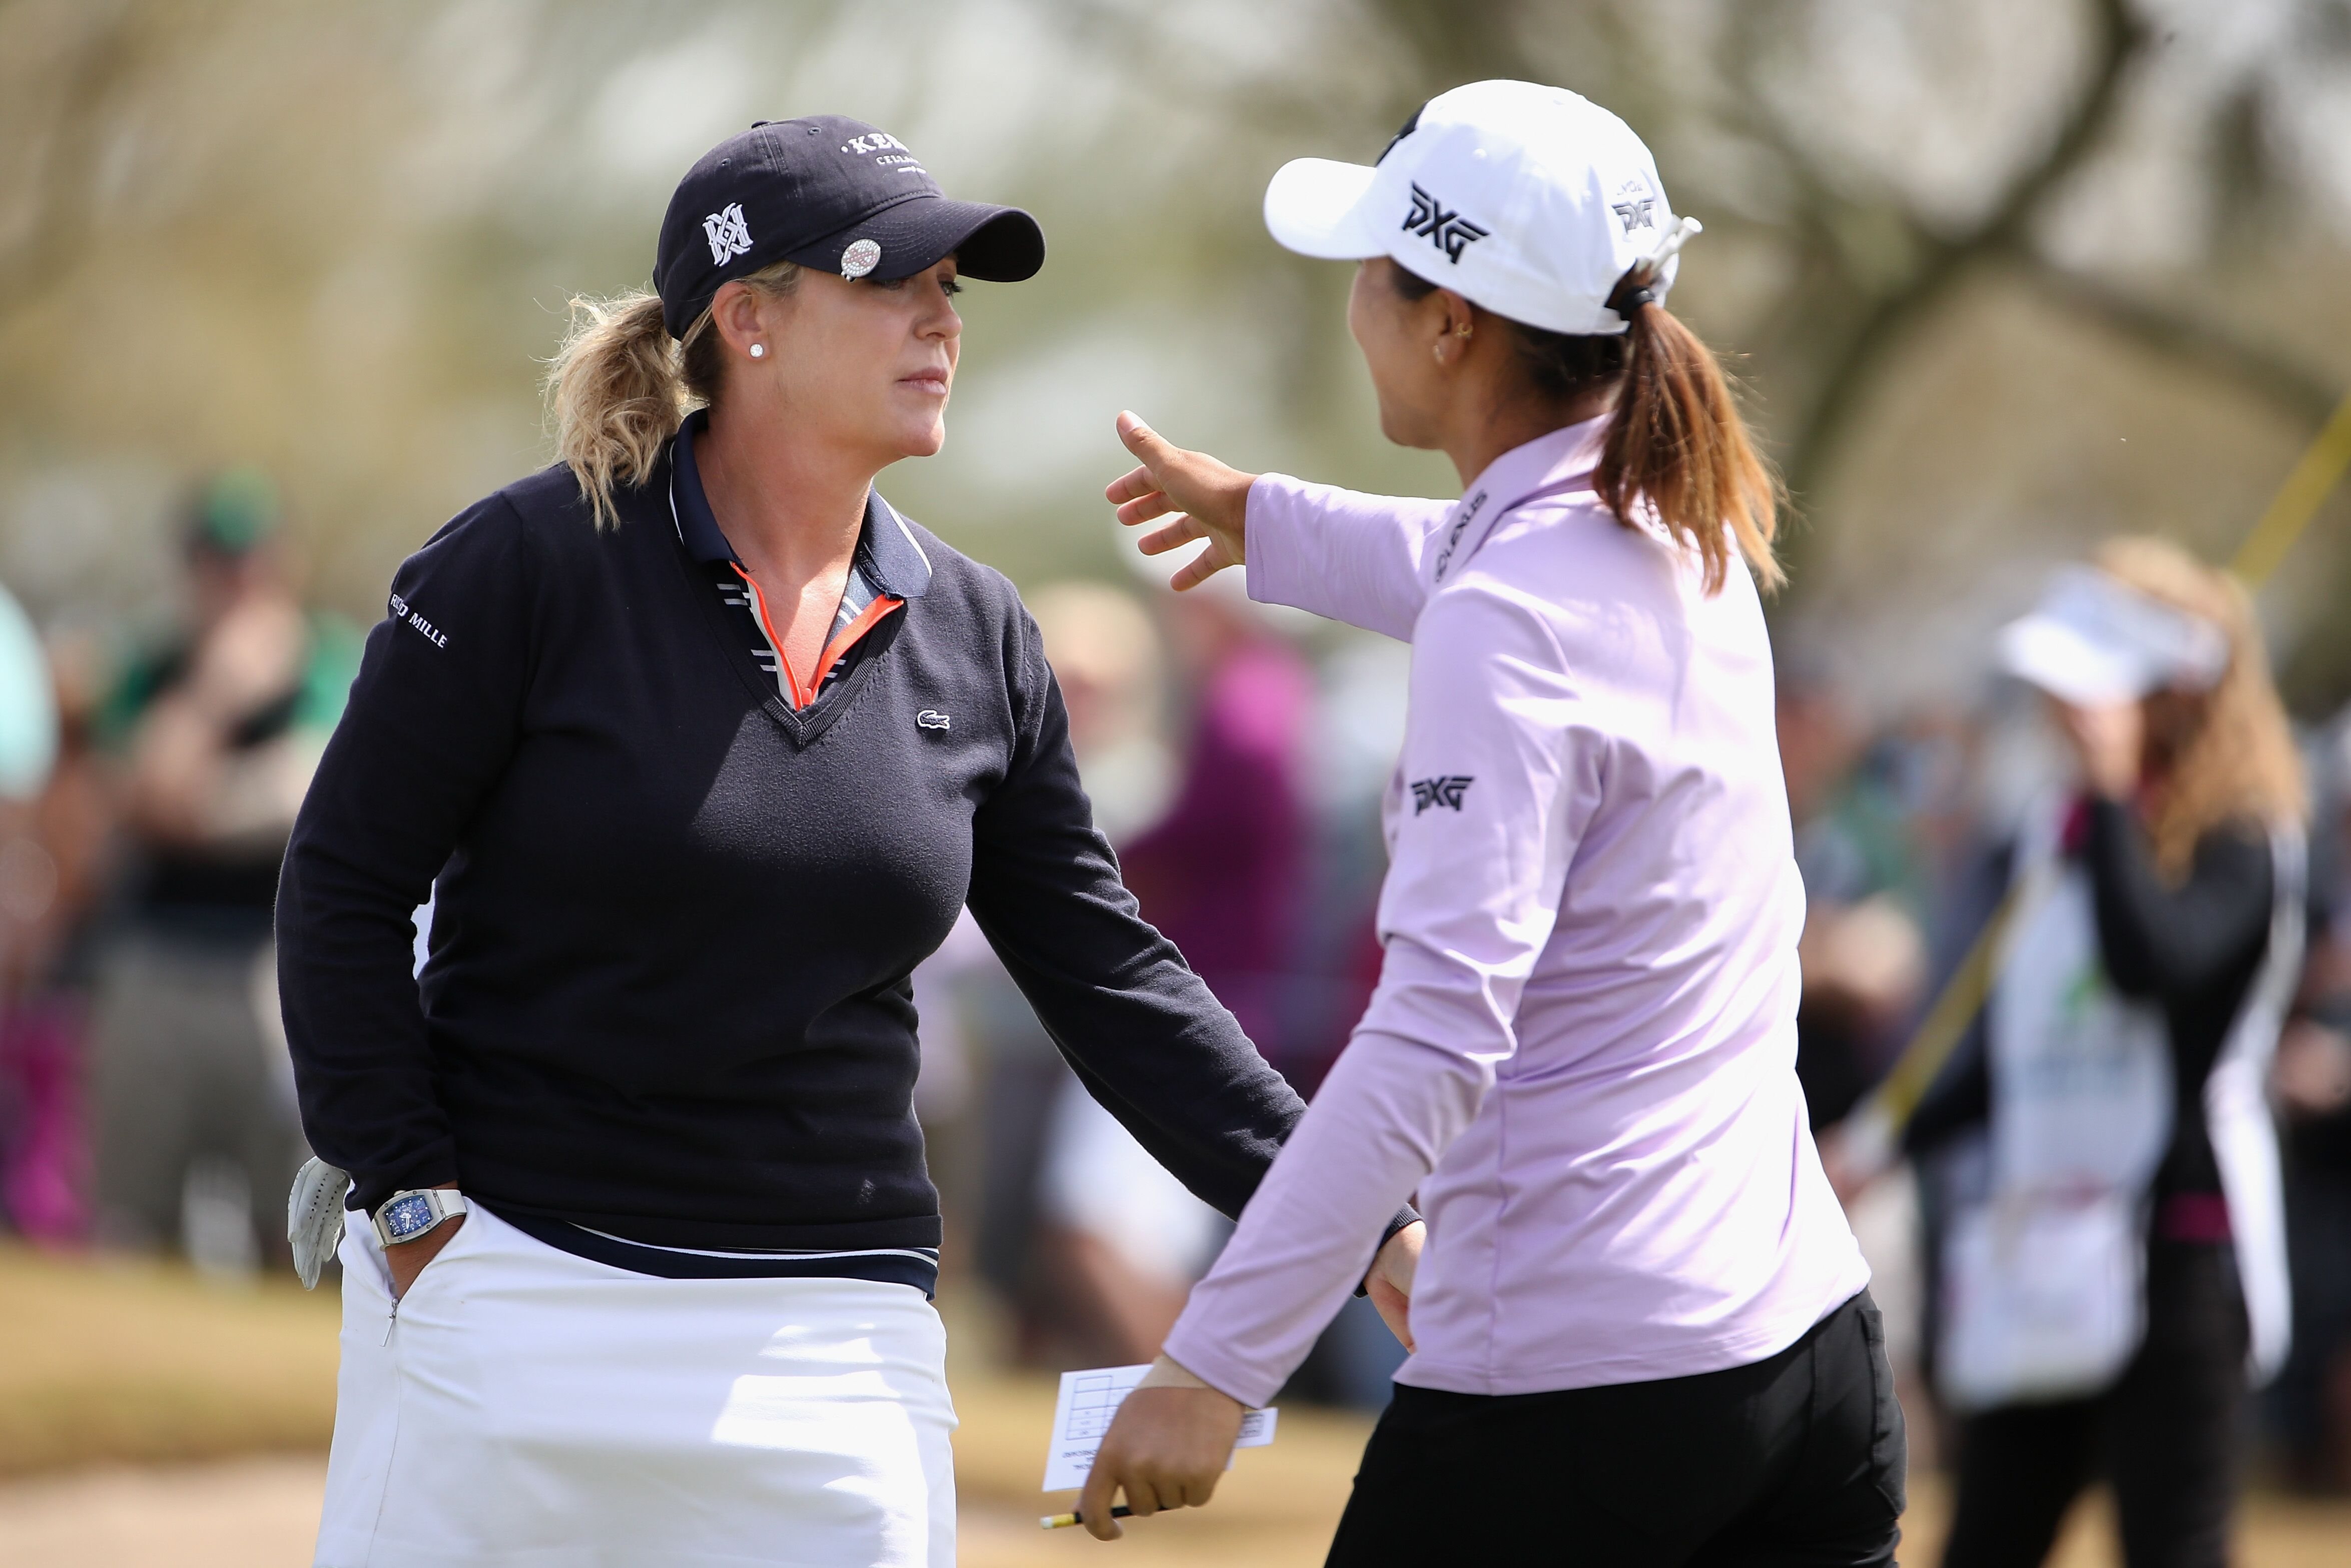 Shes only 21 but have we already seen best of Lydia Ko